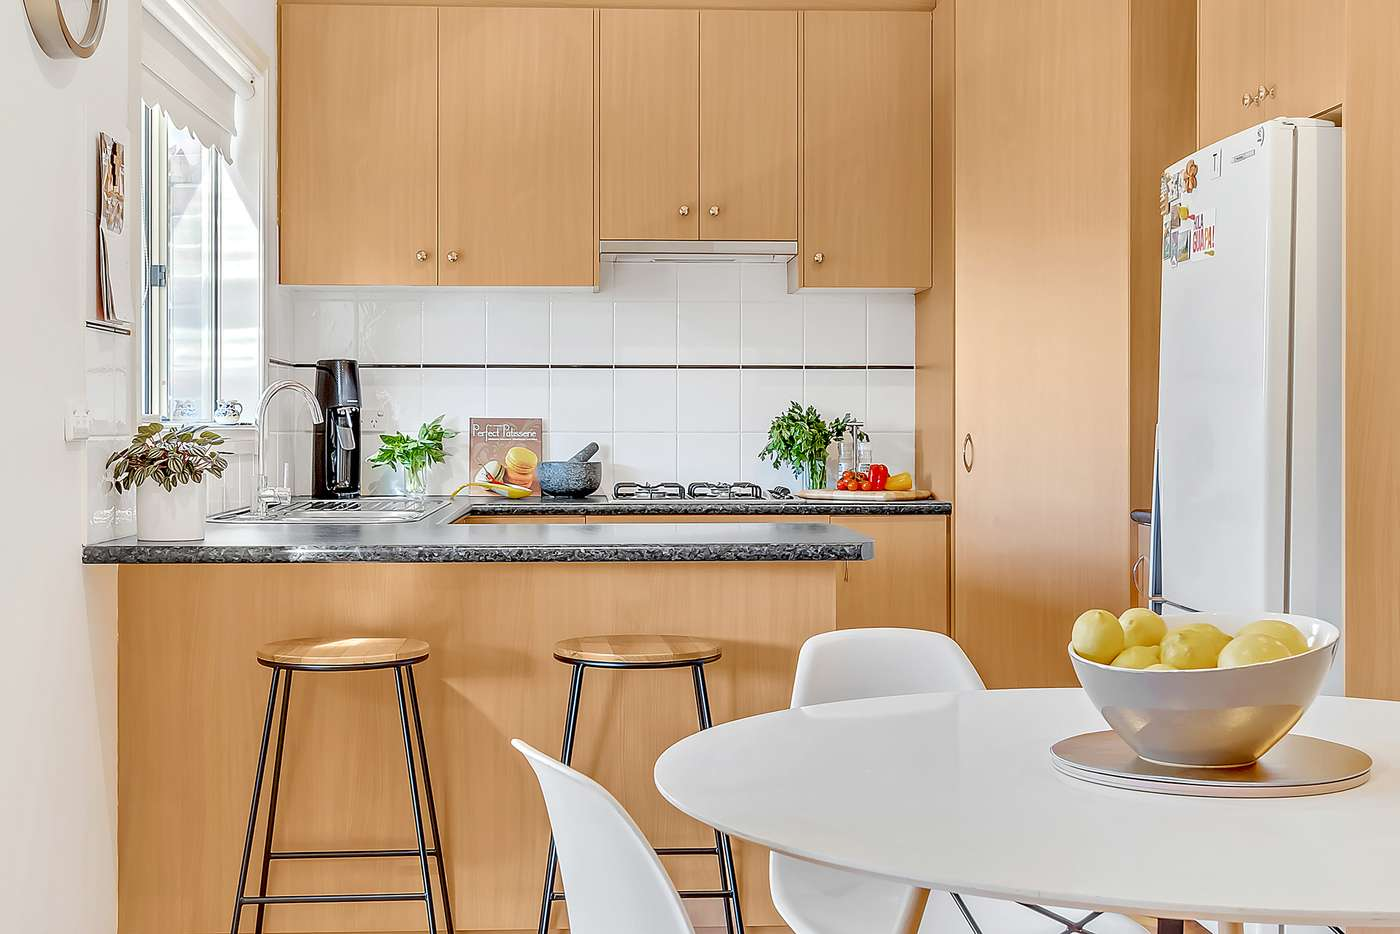 Sixth view of Homely unit listing, 6/16-18 Harbury Street, Reservoir VIC 3073